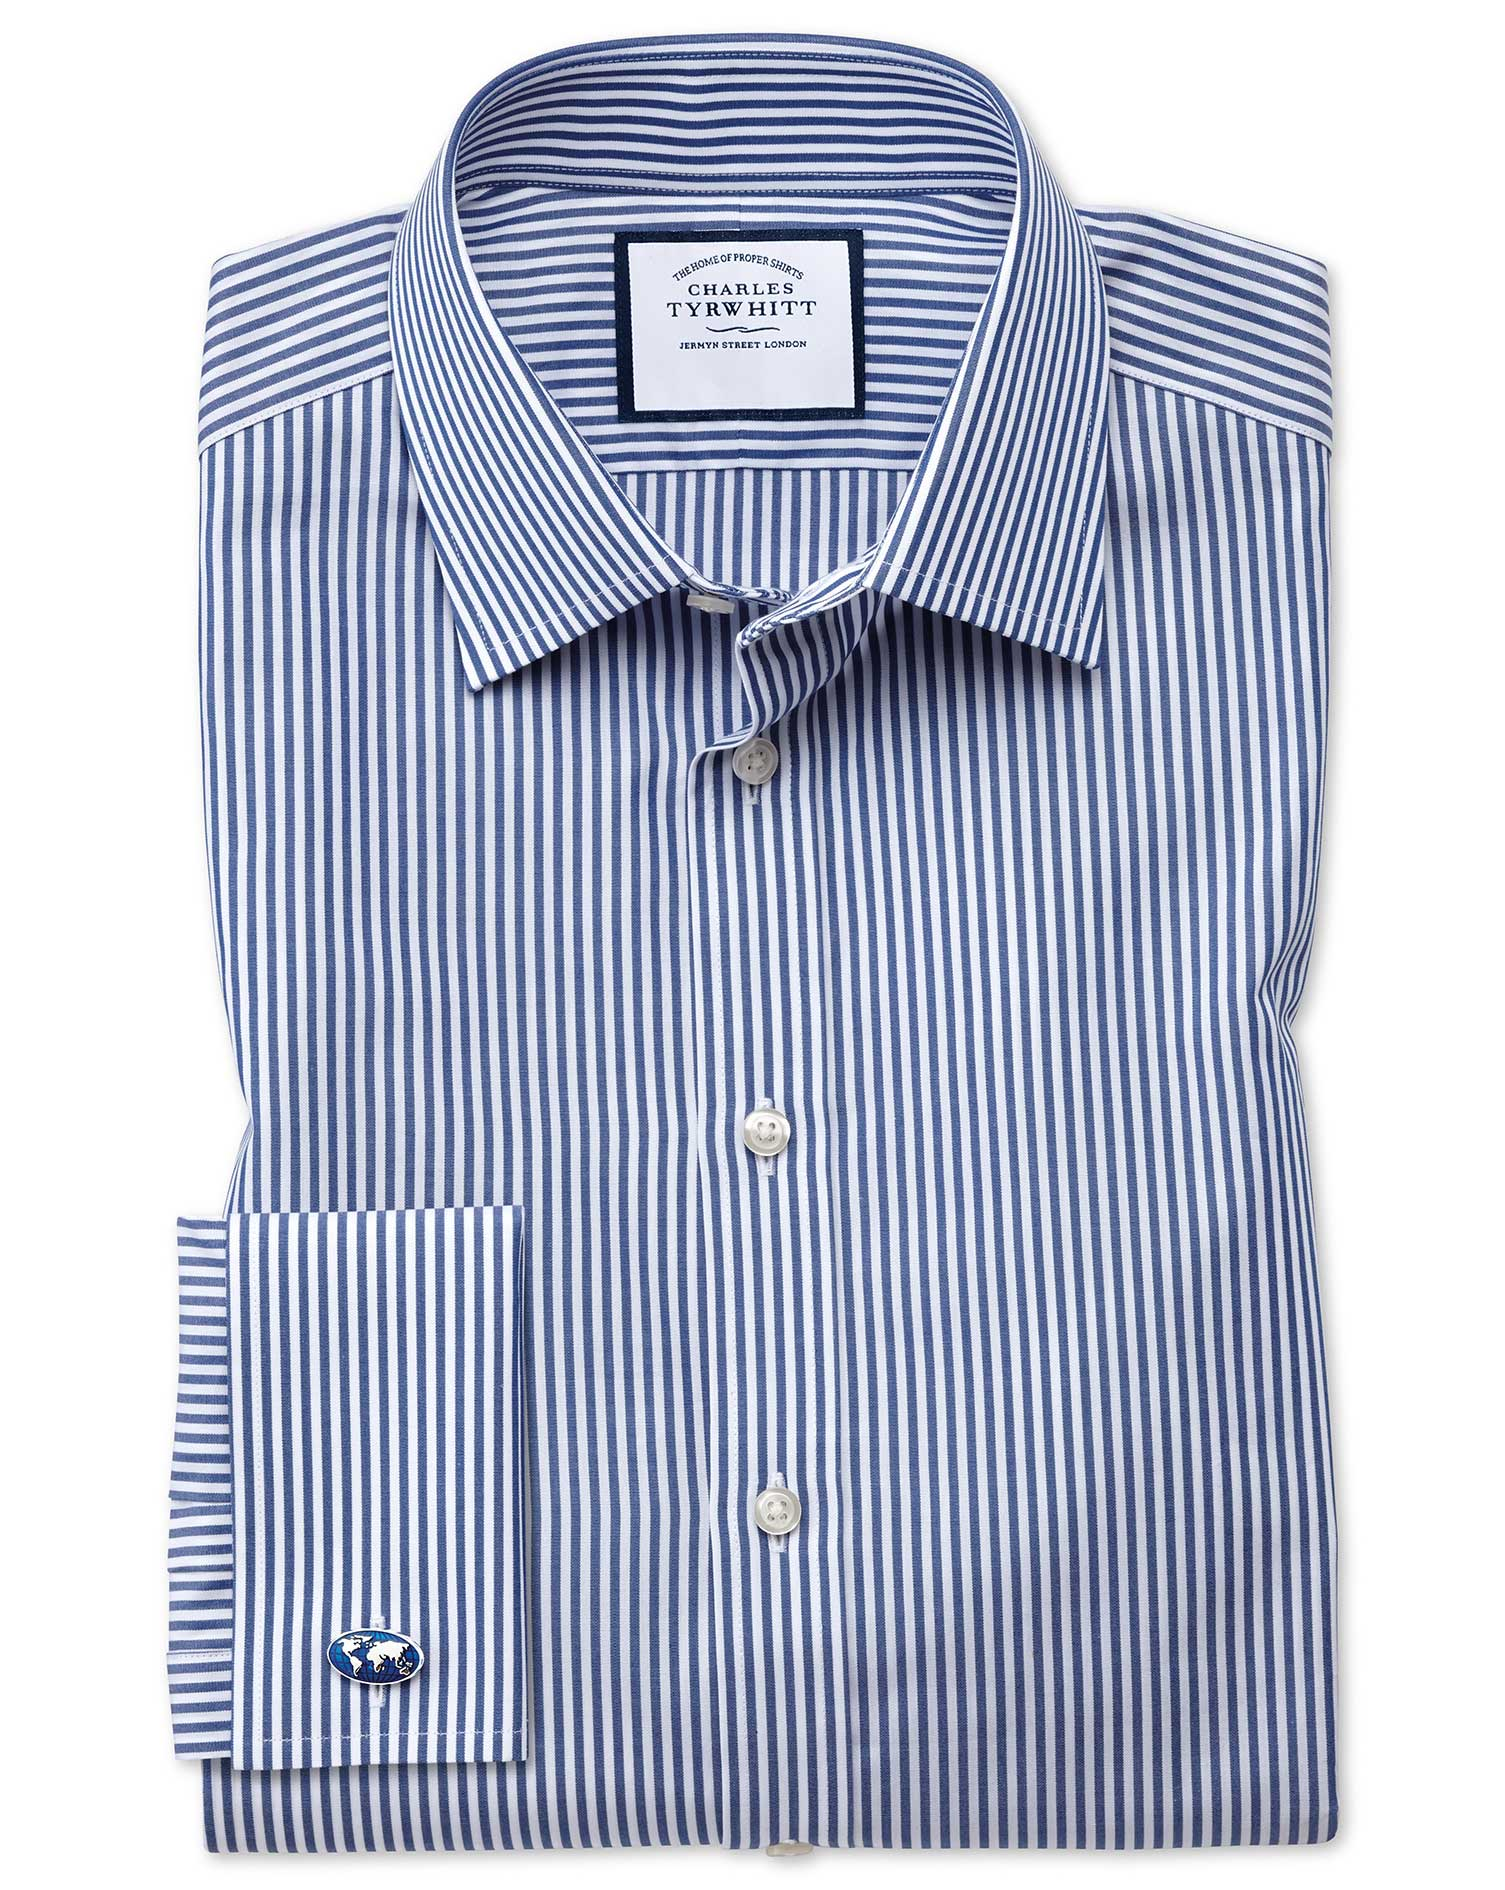 Classic Fit Bengal Stripe Navy Blue Cotton Formal Shirt Double Cuff Size 17/37 by Charles Tyrwhitt